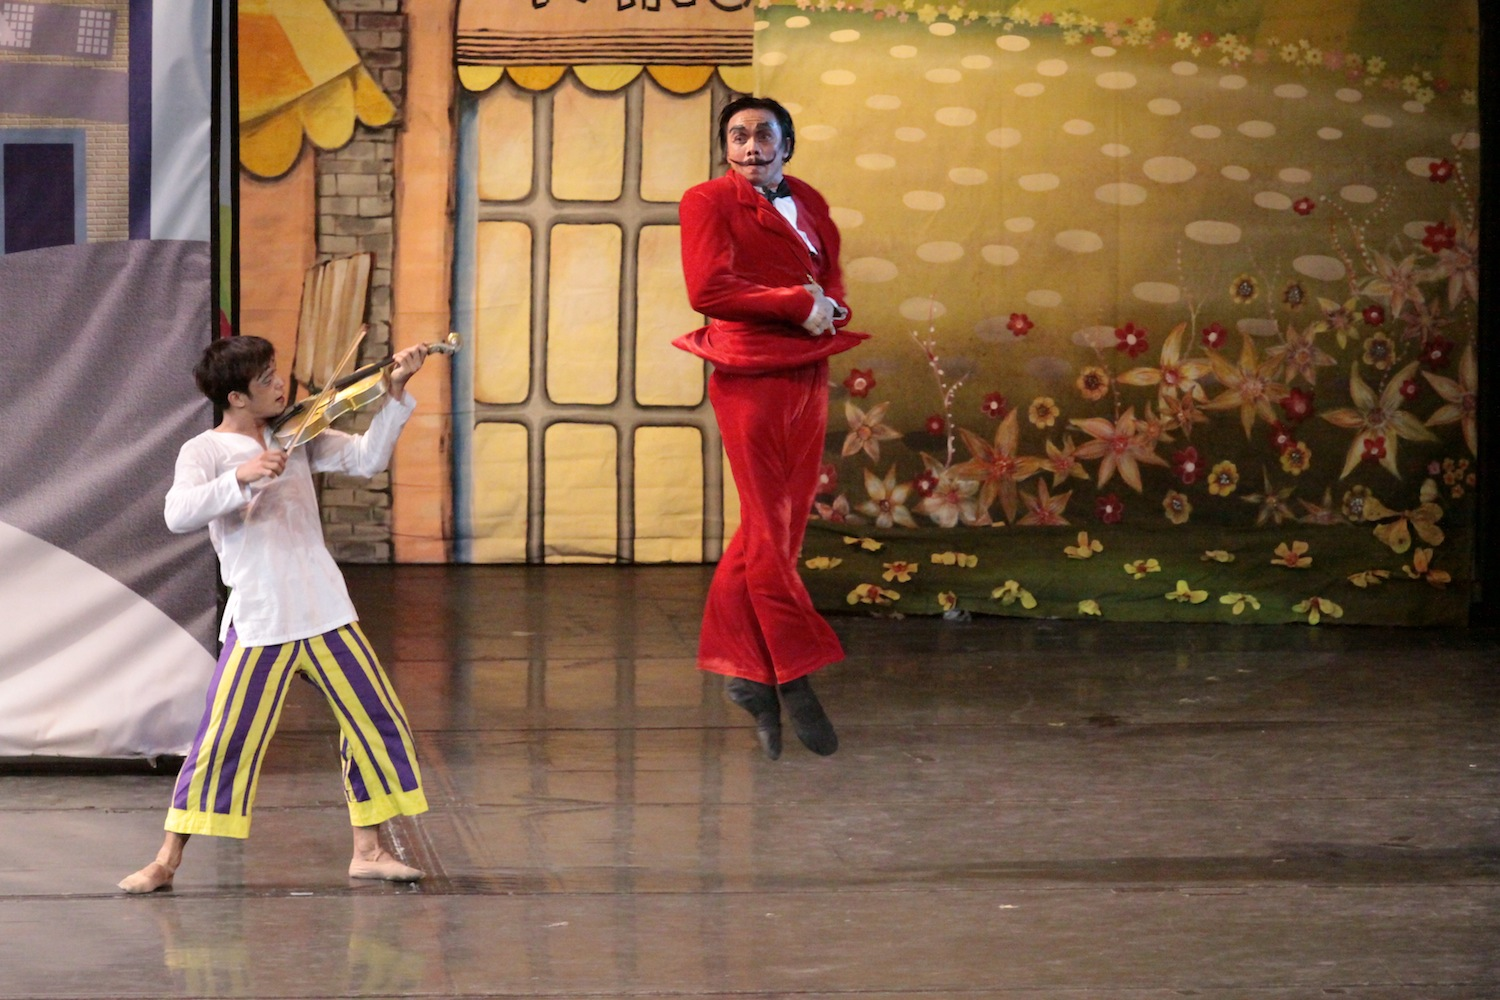 """A scene from the fun and funny """"Ang Mahiwagang Biyulin"""" that features original music by Ryan Cayabyab."""